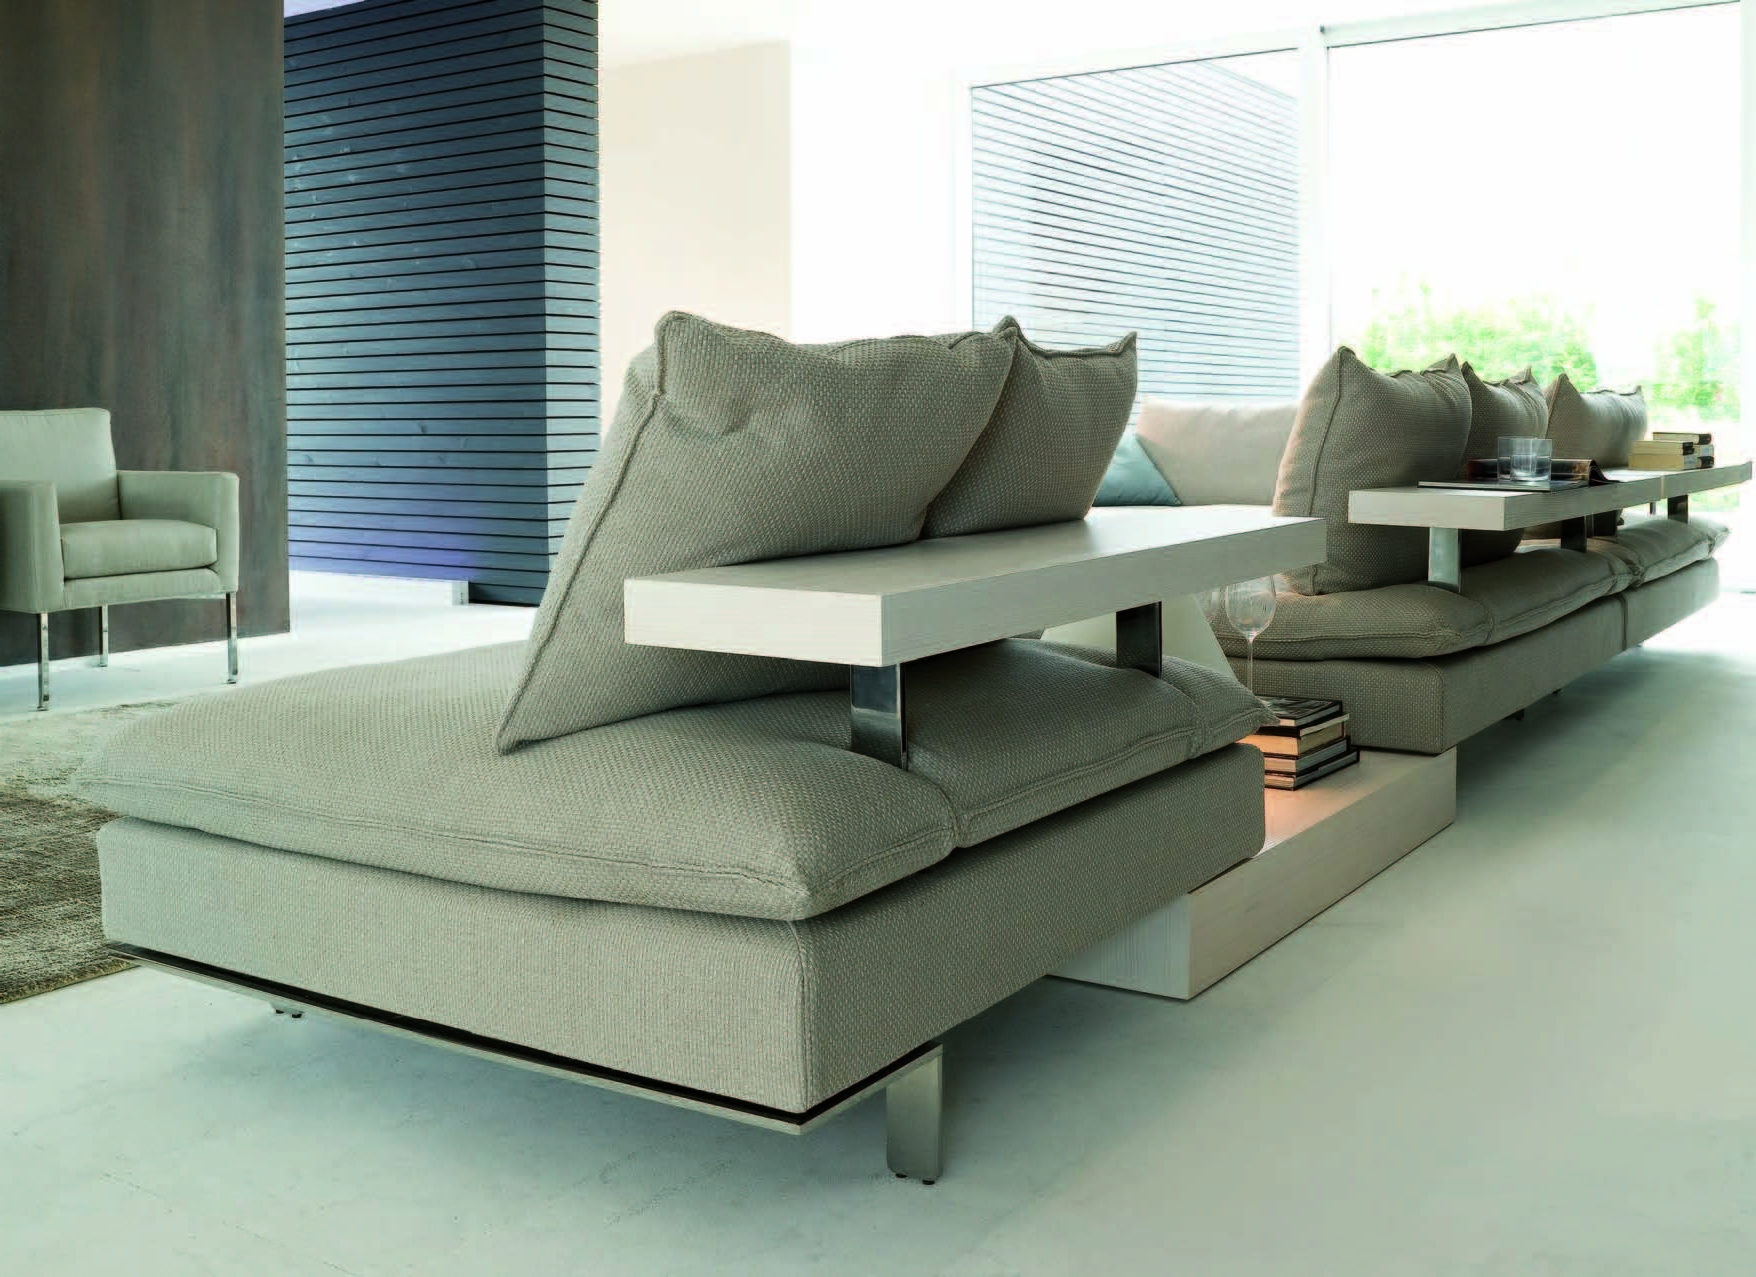 Bedroom Sofas And Chairs Within Well Known Italian Sofas At Momentoitalia – Modern Sofas,designer Sofas (View 15 of 15)